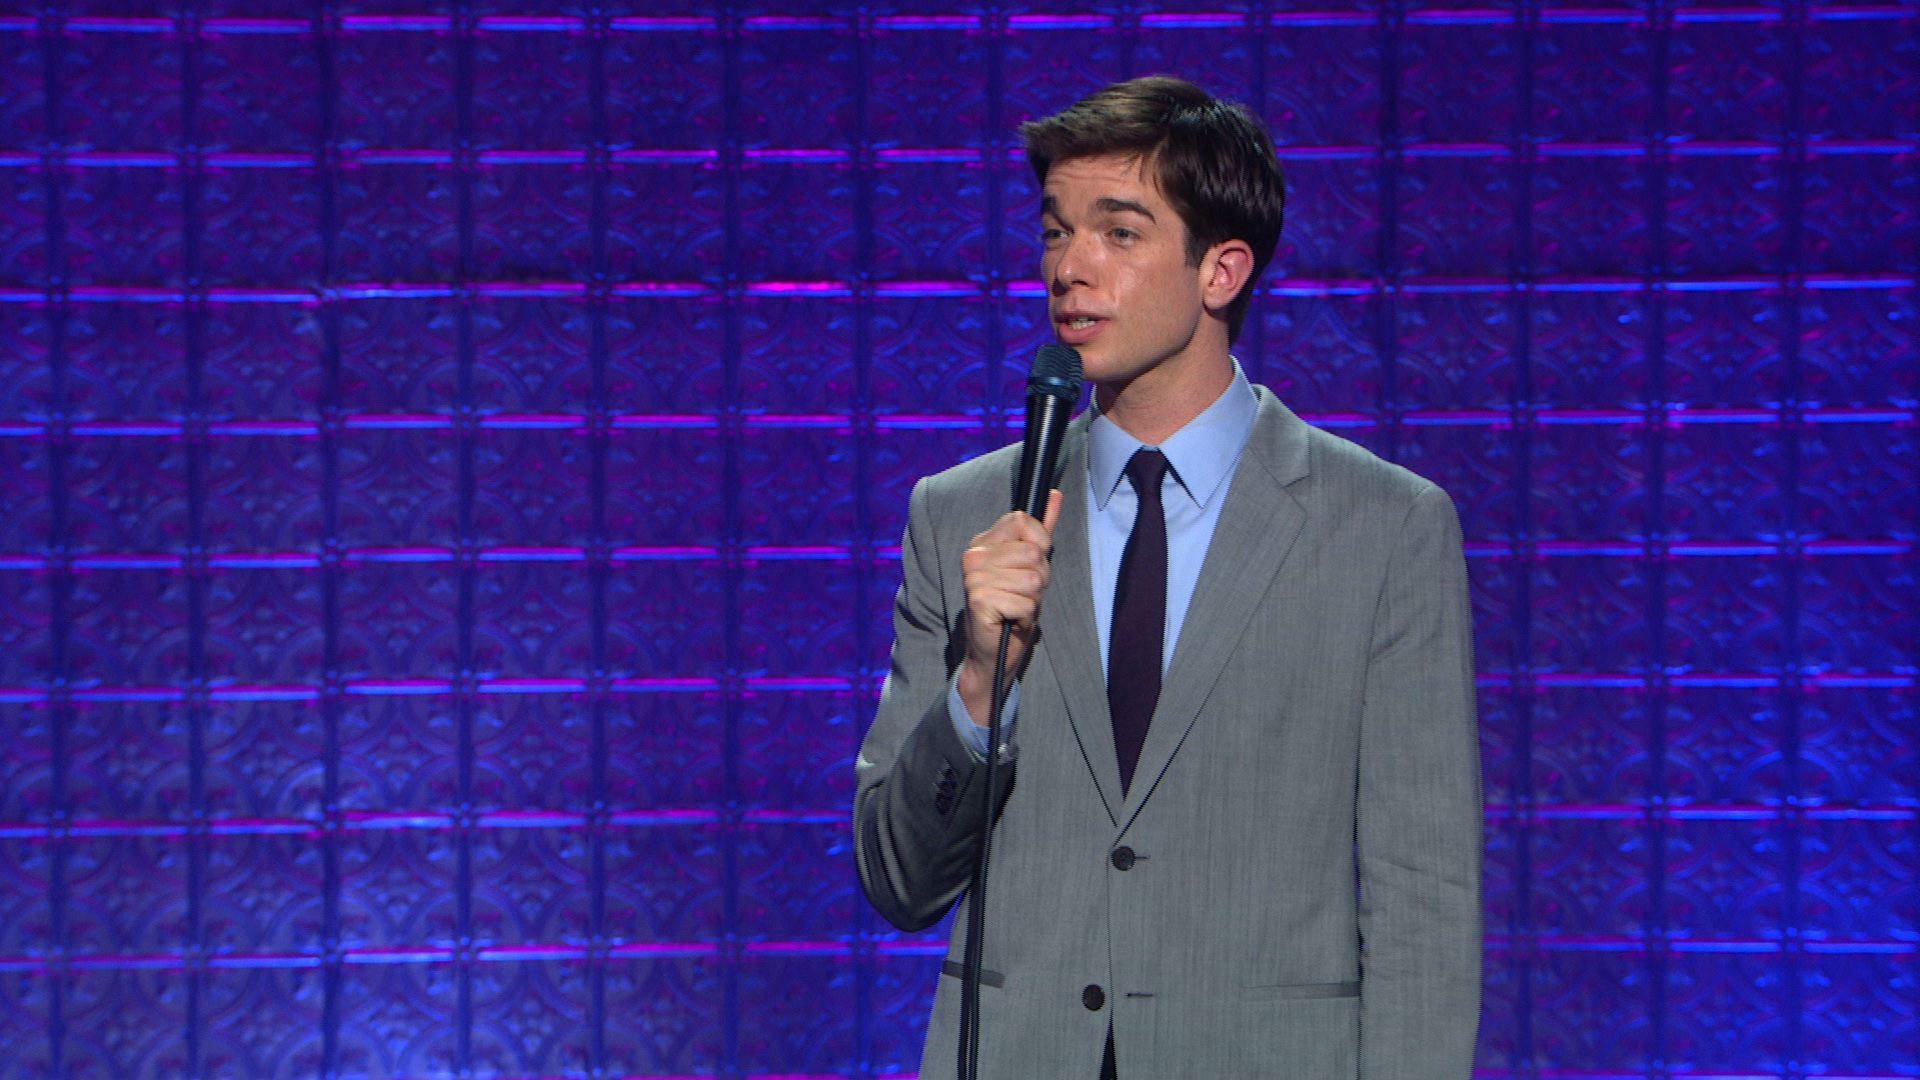 John Mulaney - Blacking Out